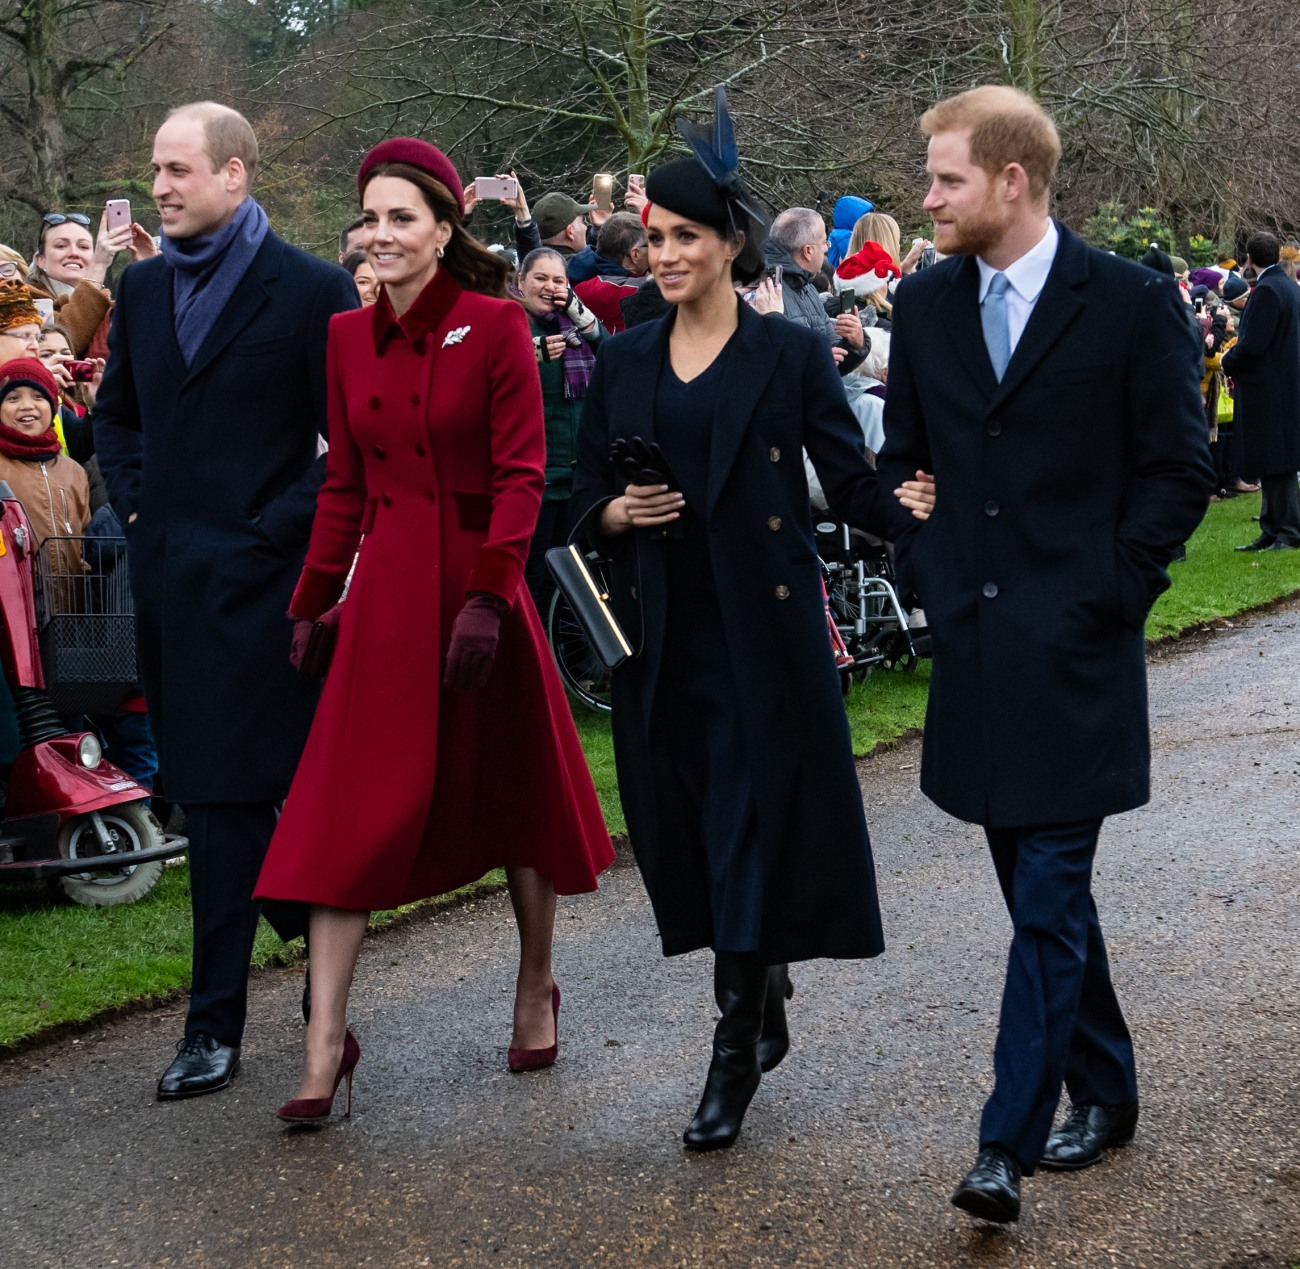 Omid Scobie: The Sussexes Are Not Moving